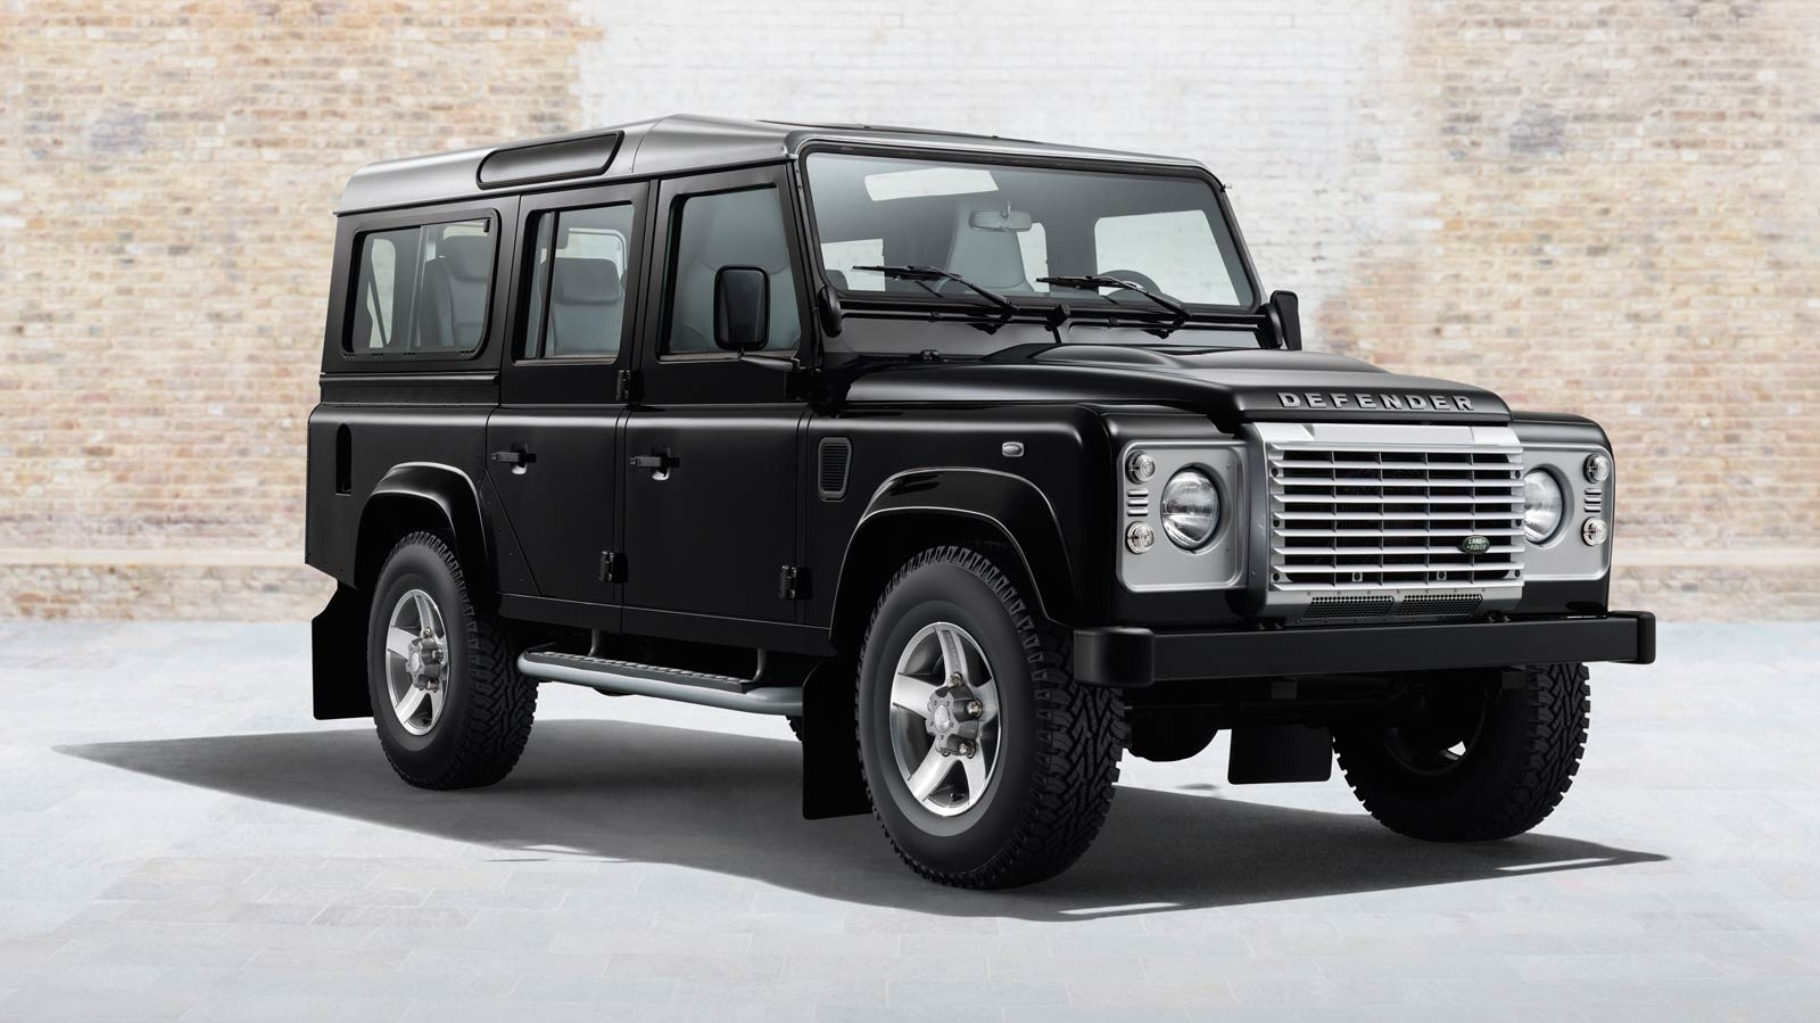 prix du neuf land rover defender 2016 en algerie fiche technique d taill e autojdid. Black Bedroom Furniture Sets. Home Design Ideas